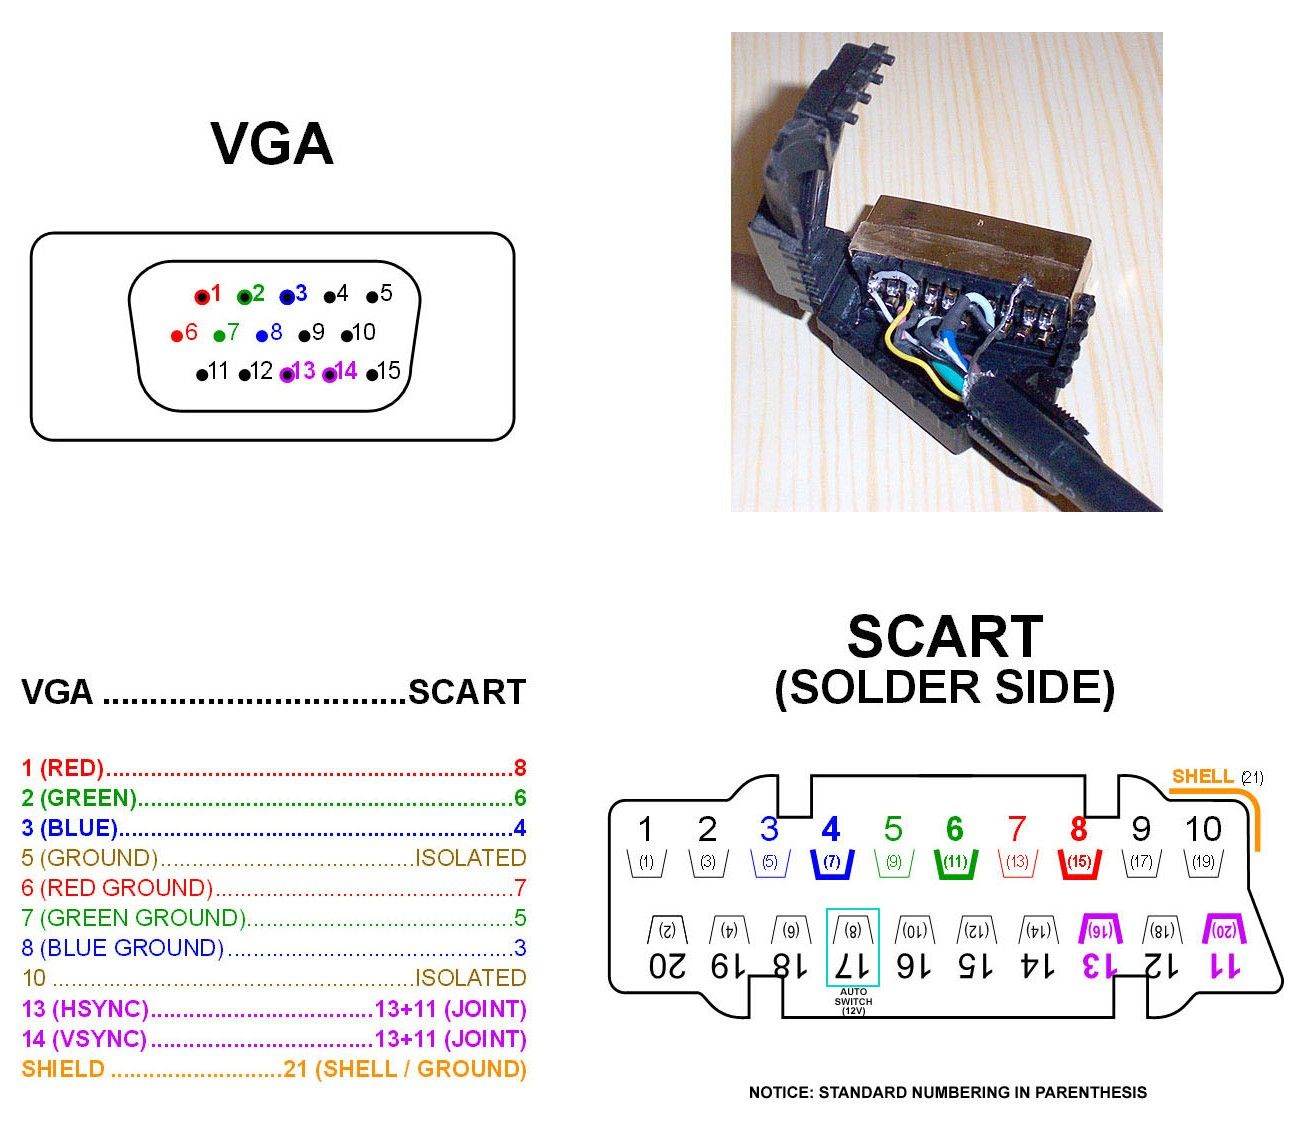 Scart To Vga Electronica In 2018 Pinterest Electronics Rca Dvi Schematic